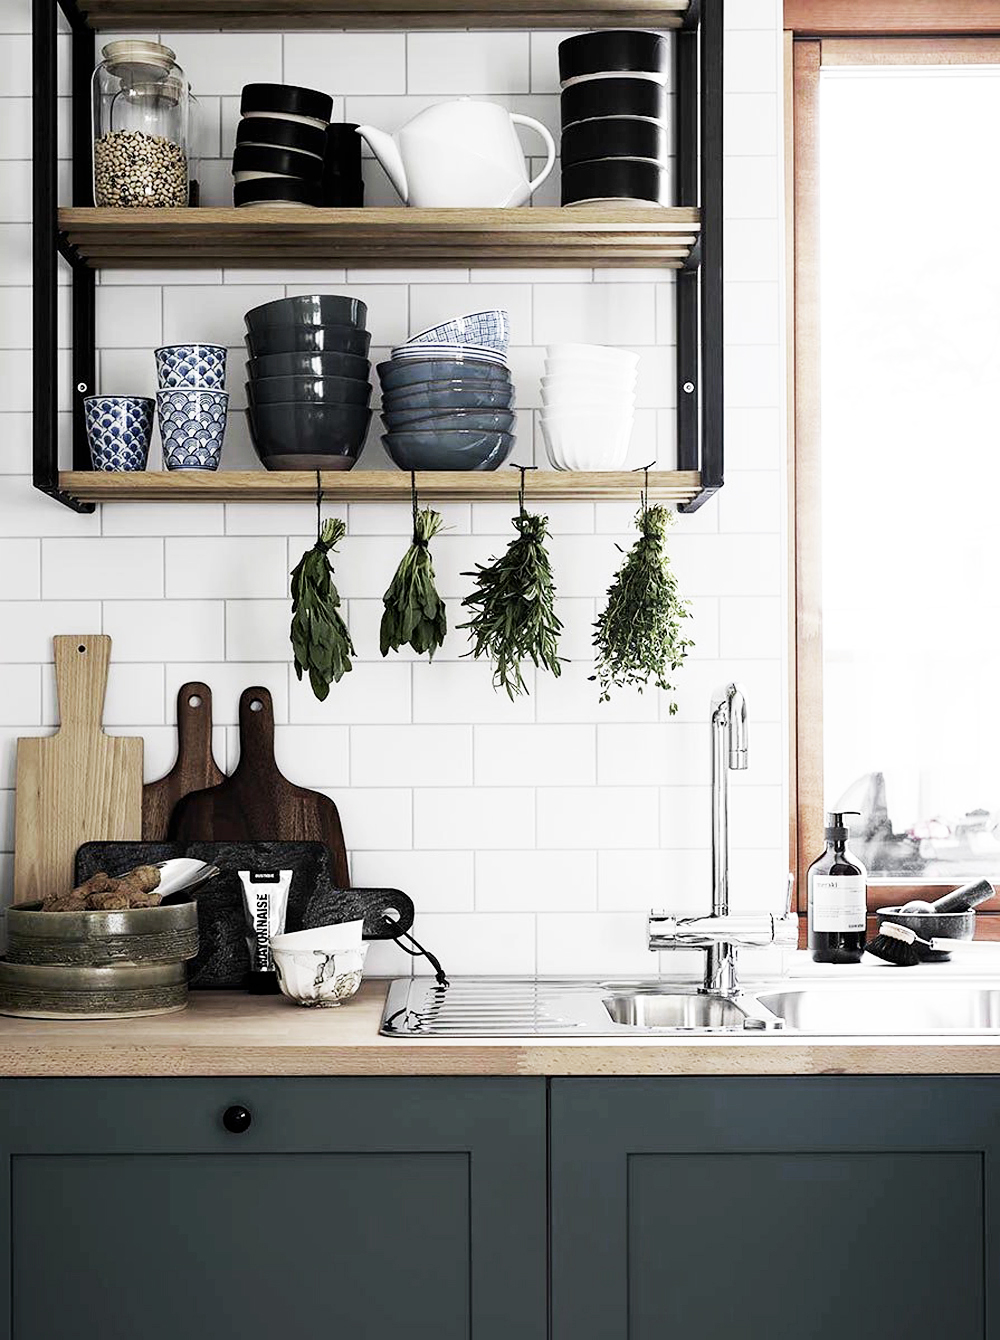 Alexandra Ogonowski, interiors, home, home inspiration, sunday sanctuary, oracle fox, scandinavian house, kitchen